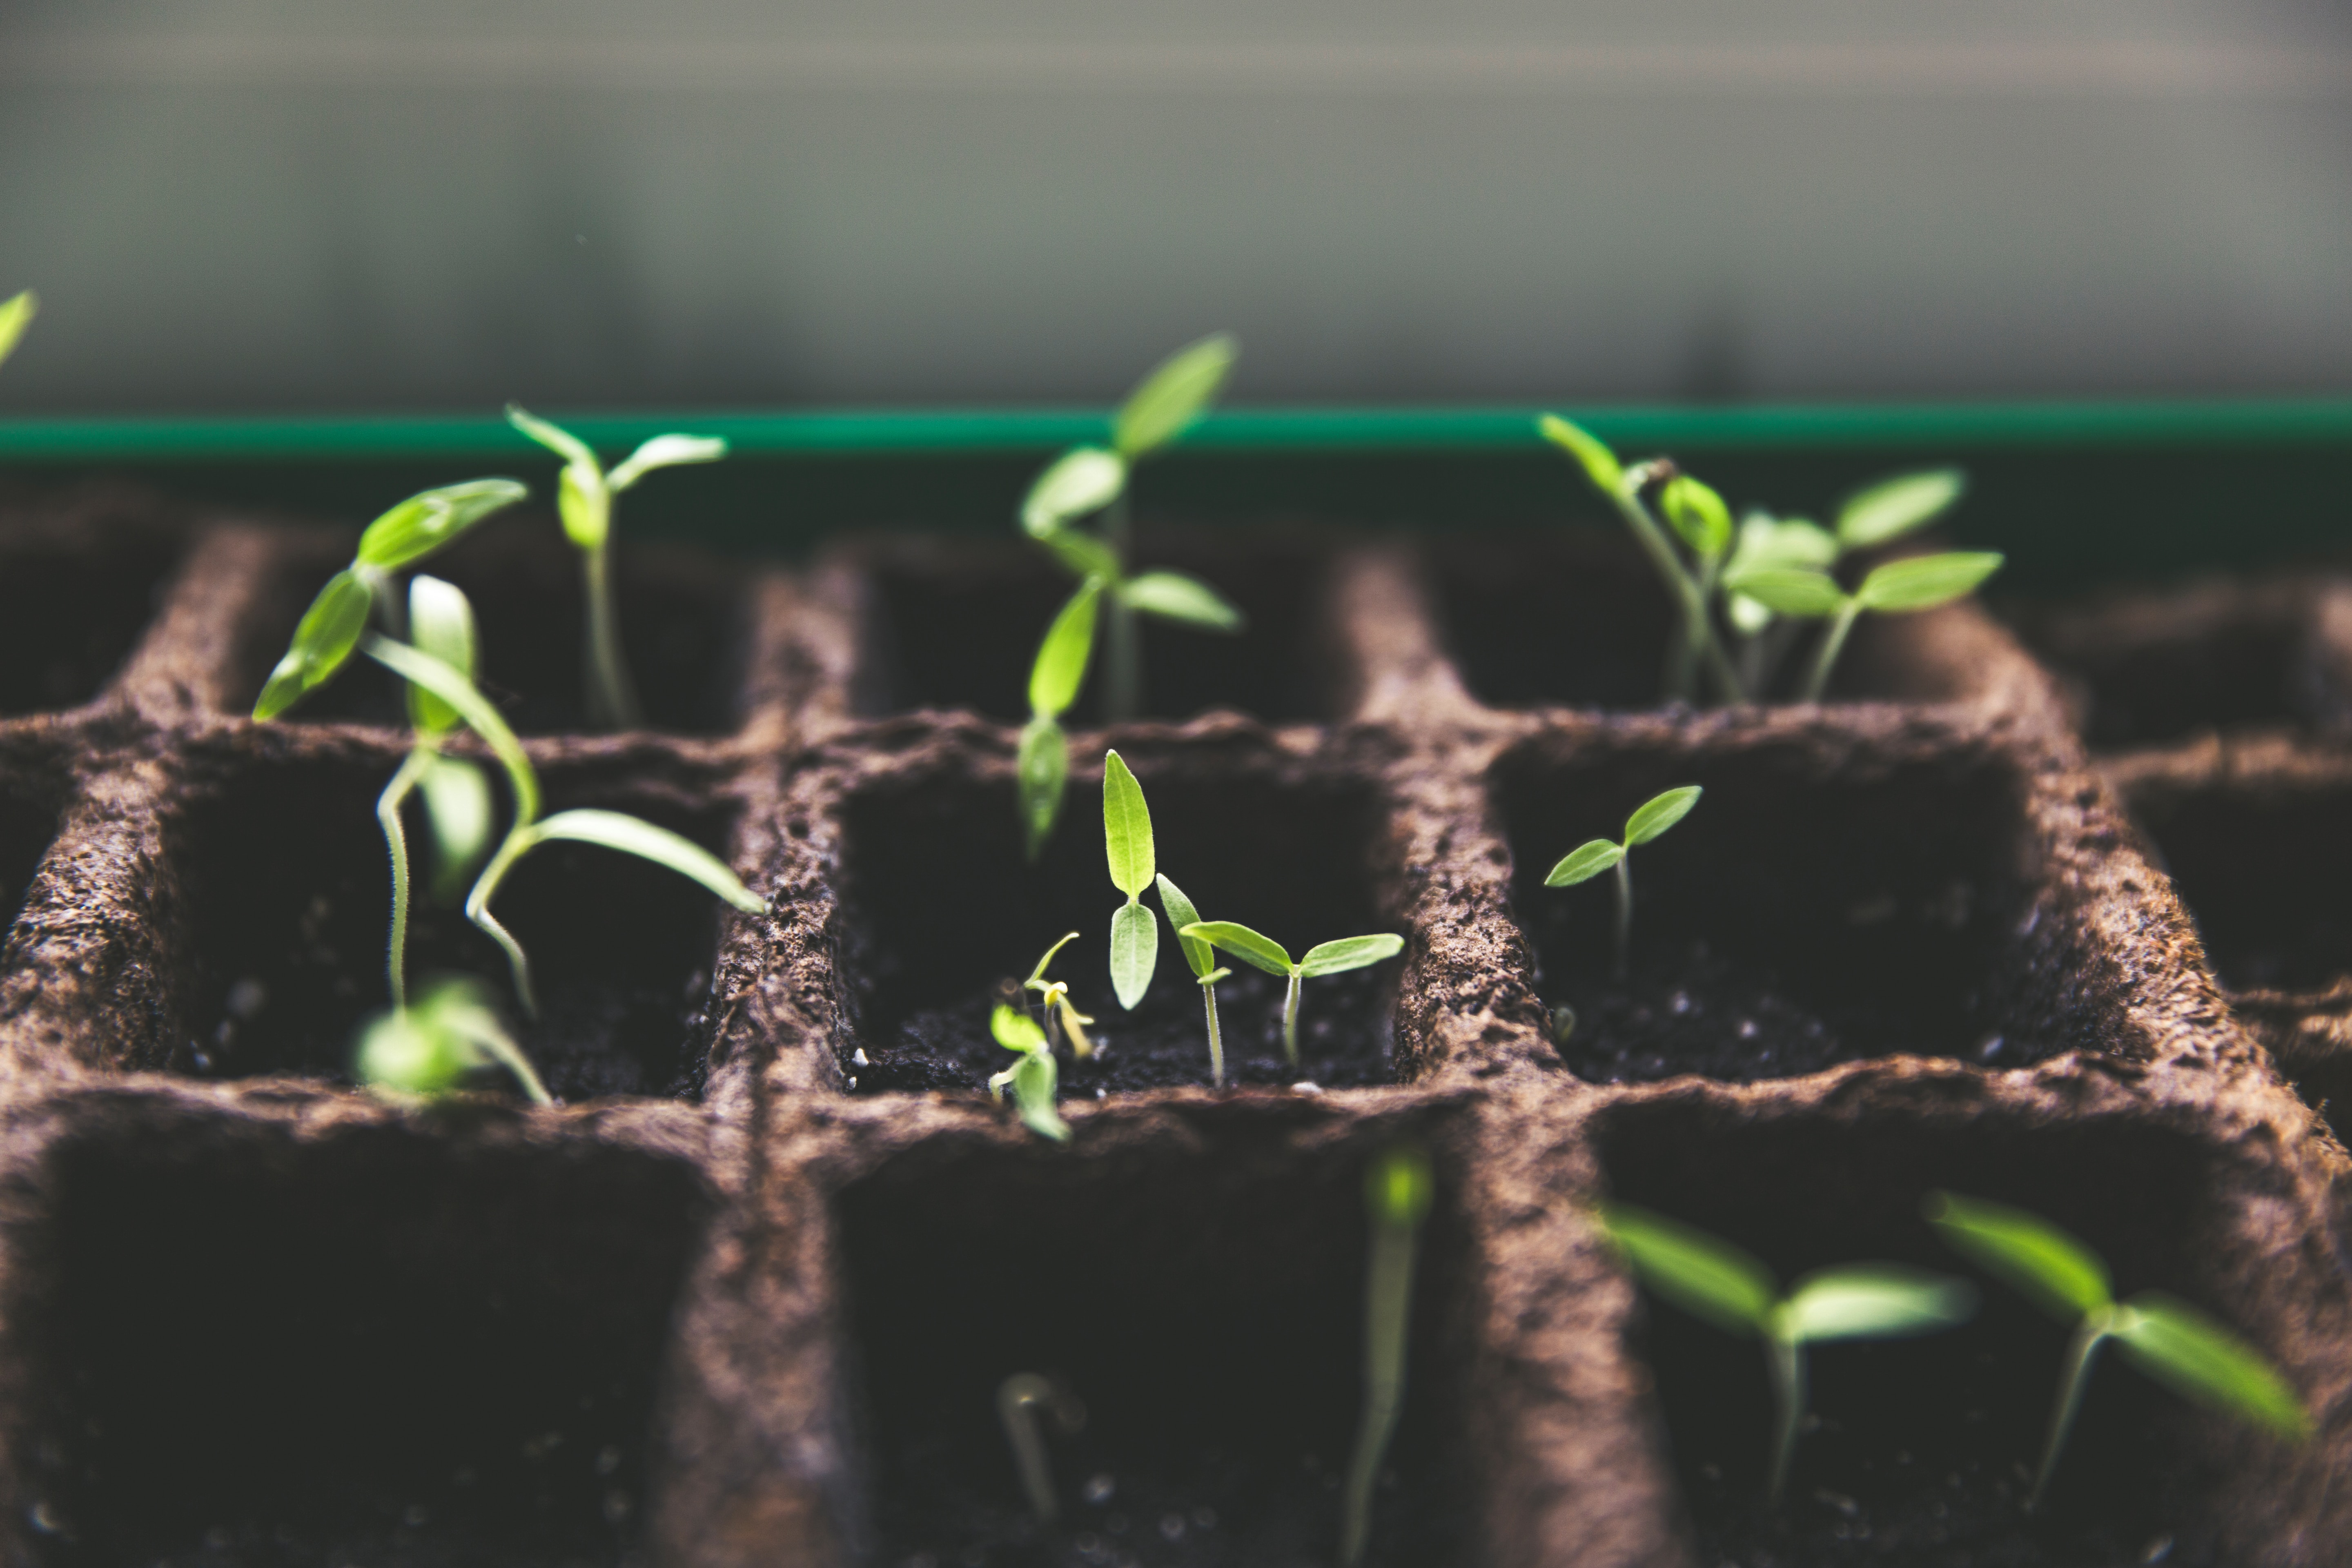 How do you want your seeds to sprout?